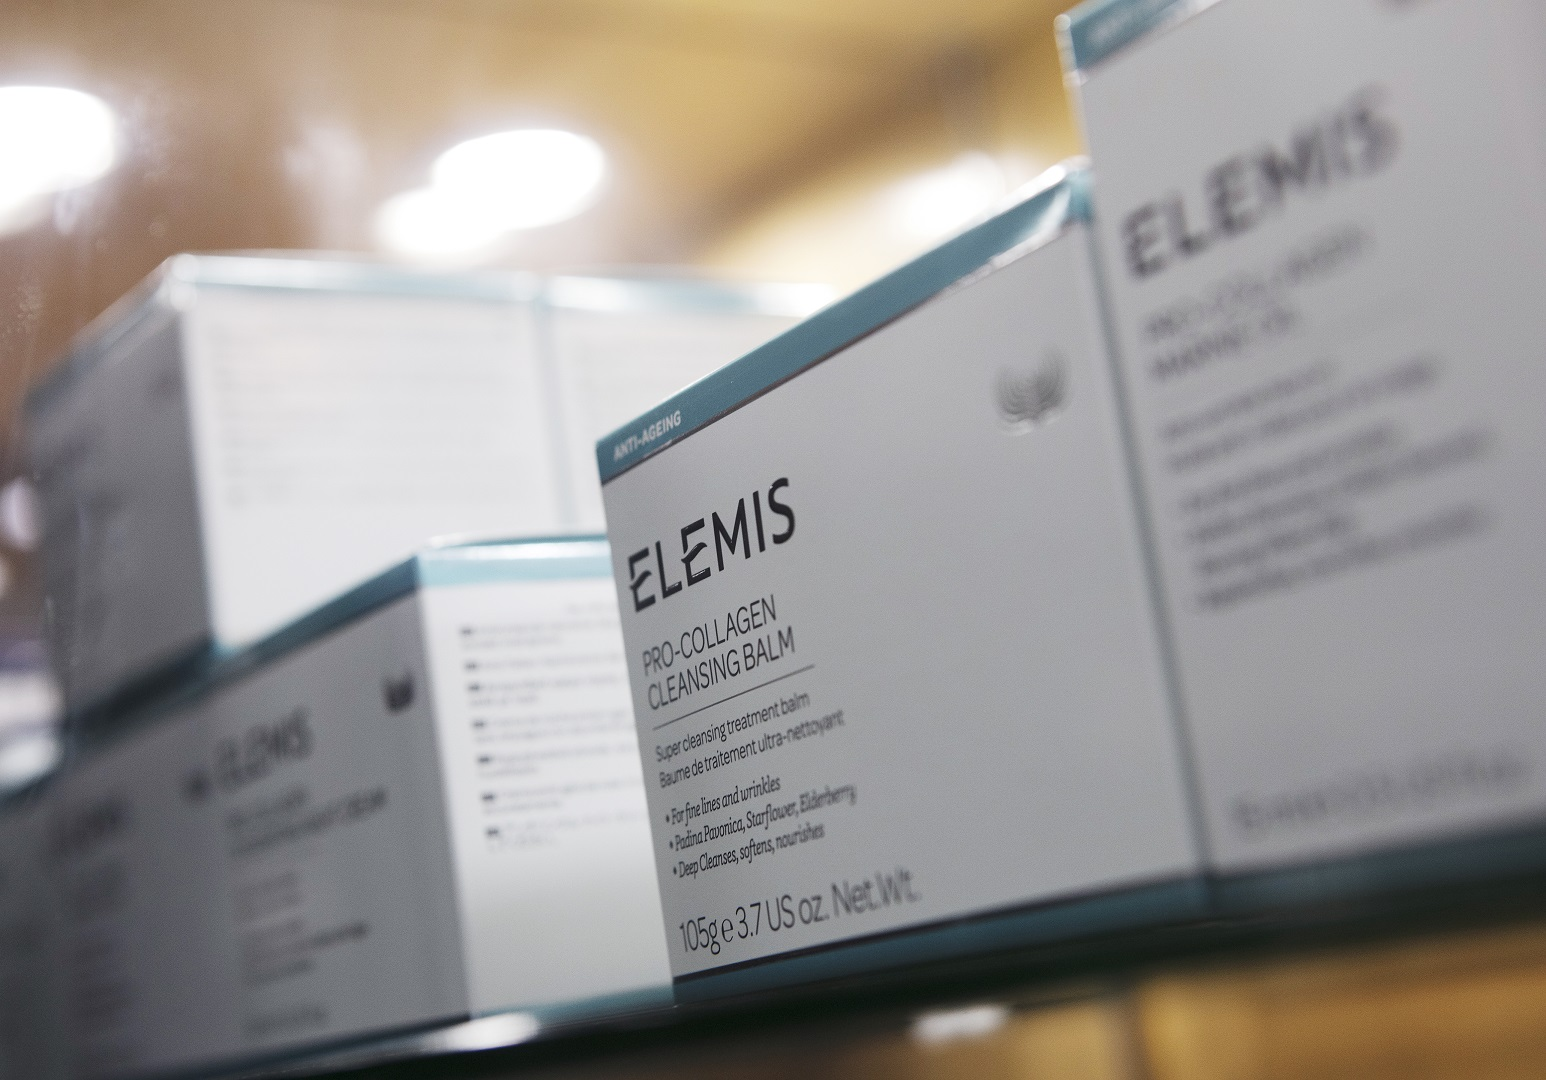 Elemis Pro Collagen Cleansing Balm at the Matfen Hall Spa